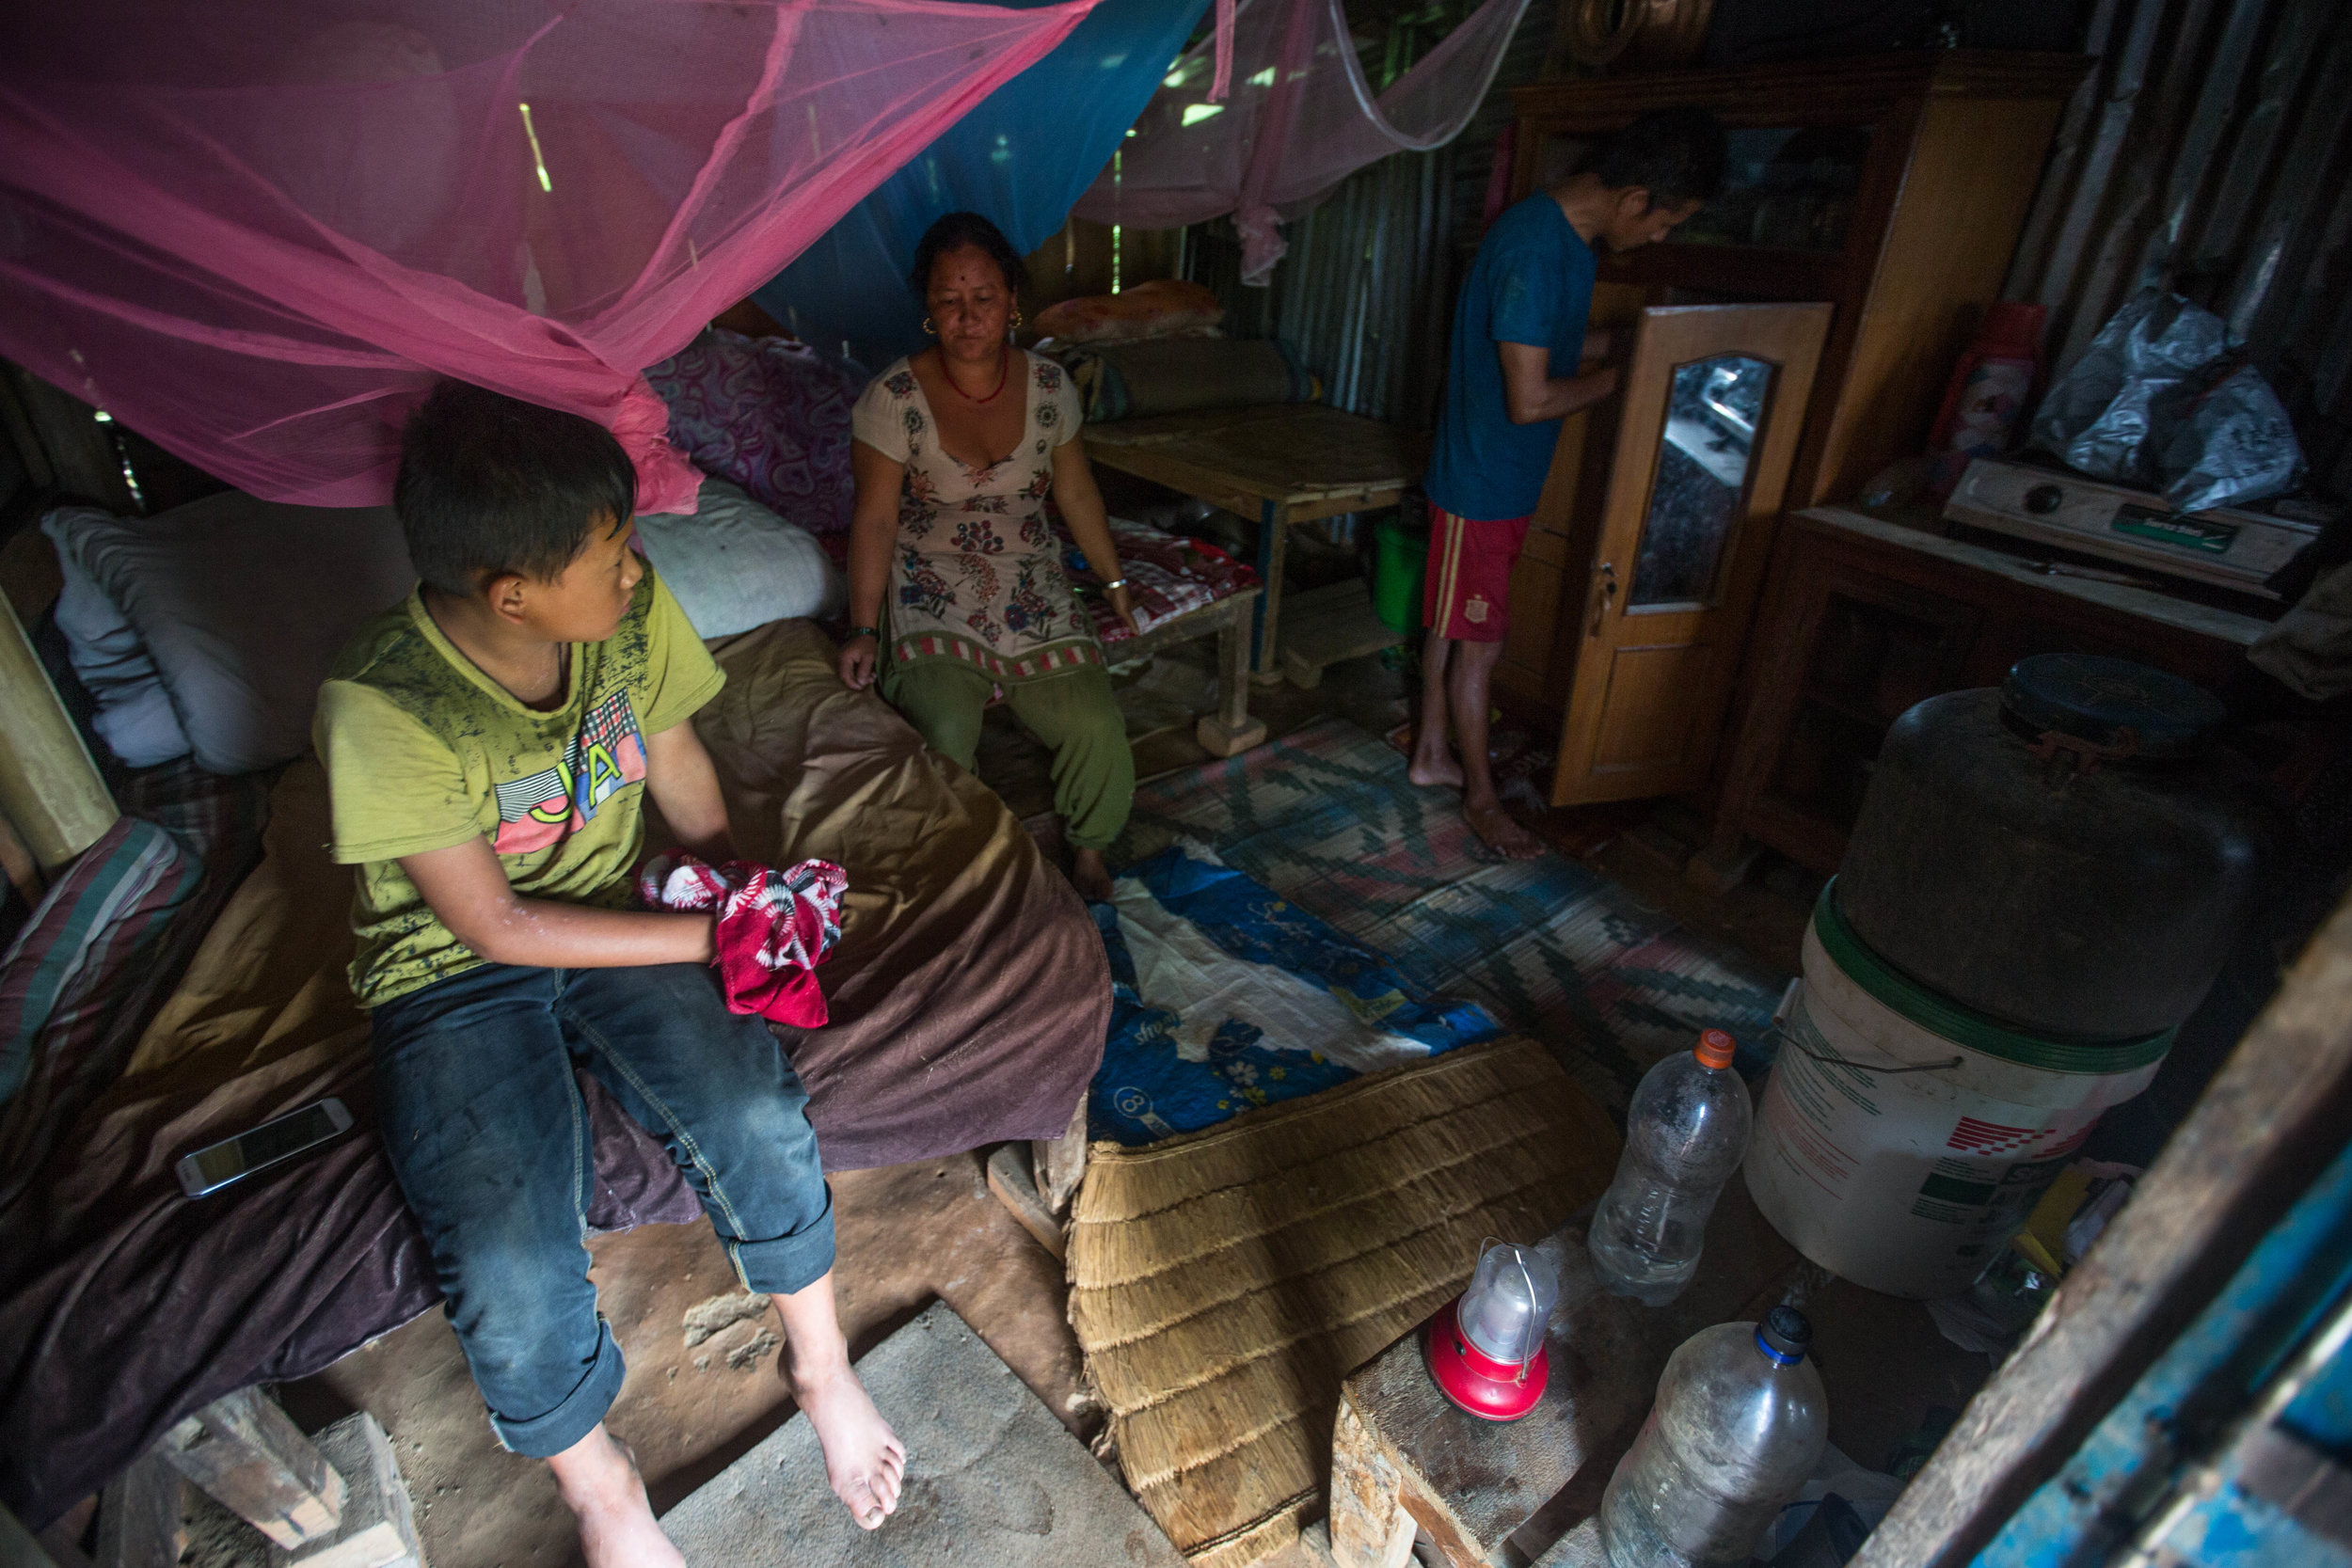 Sunil, Chari and Bhoj in their temporary home in Gorkha Nepal. Living near the earthquake's epicenter, they lost their home in 2015; they still await government assistance.